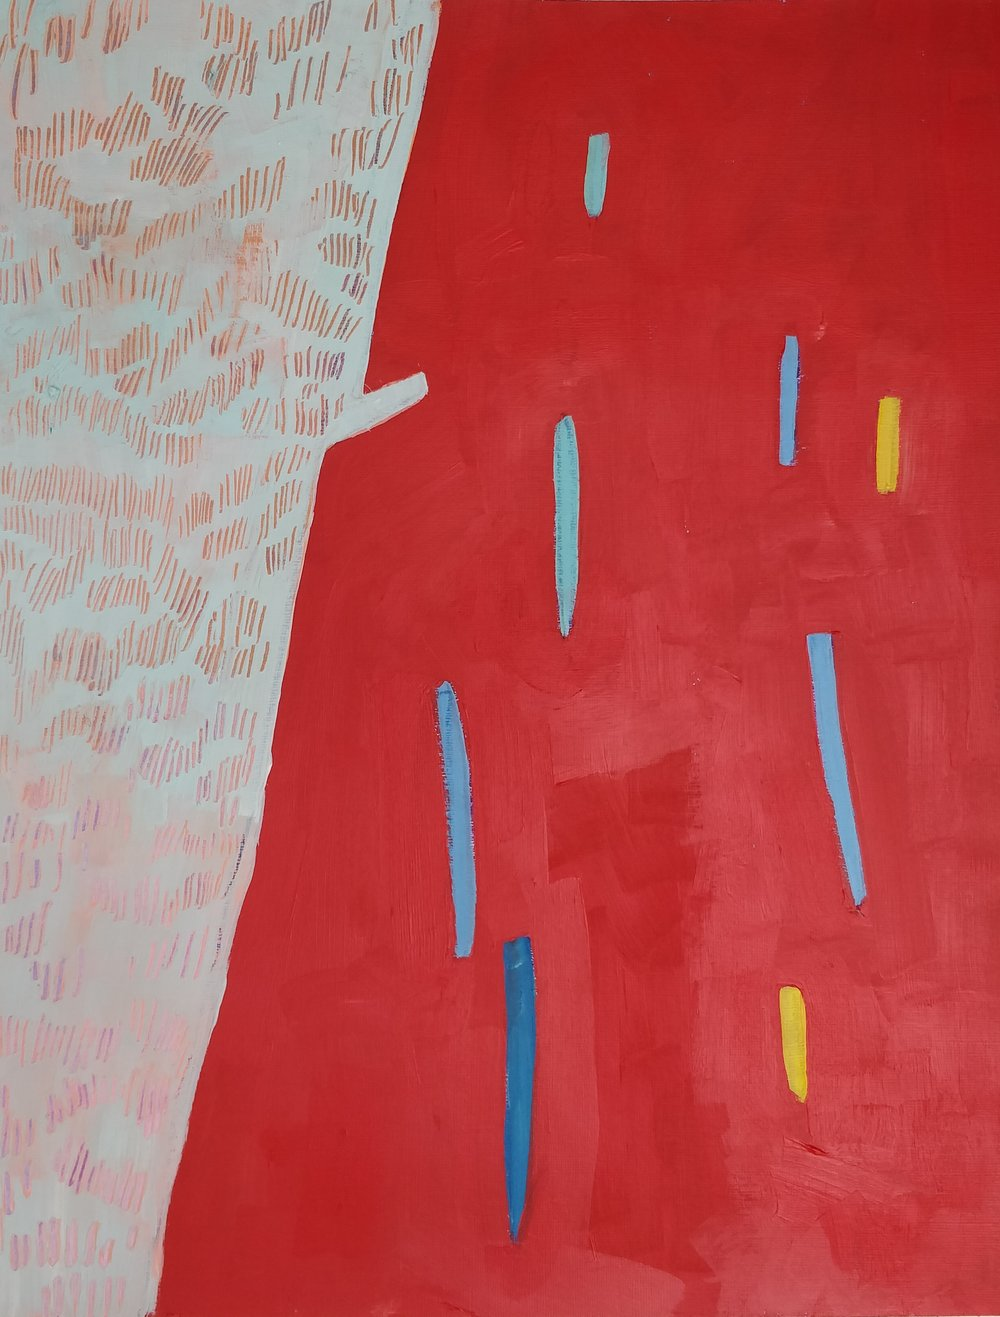 Sketching out ideas - red fence - acrylic on paper